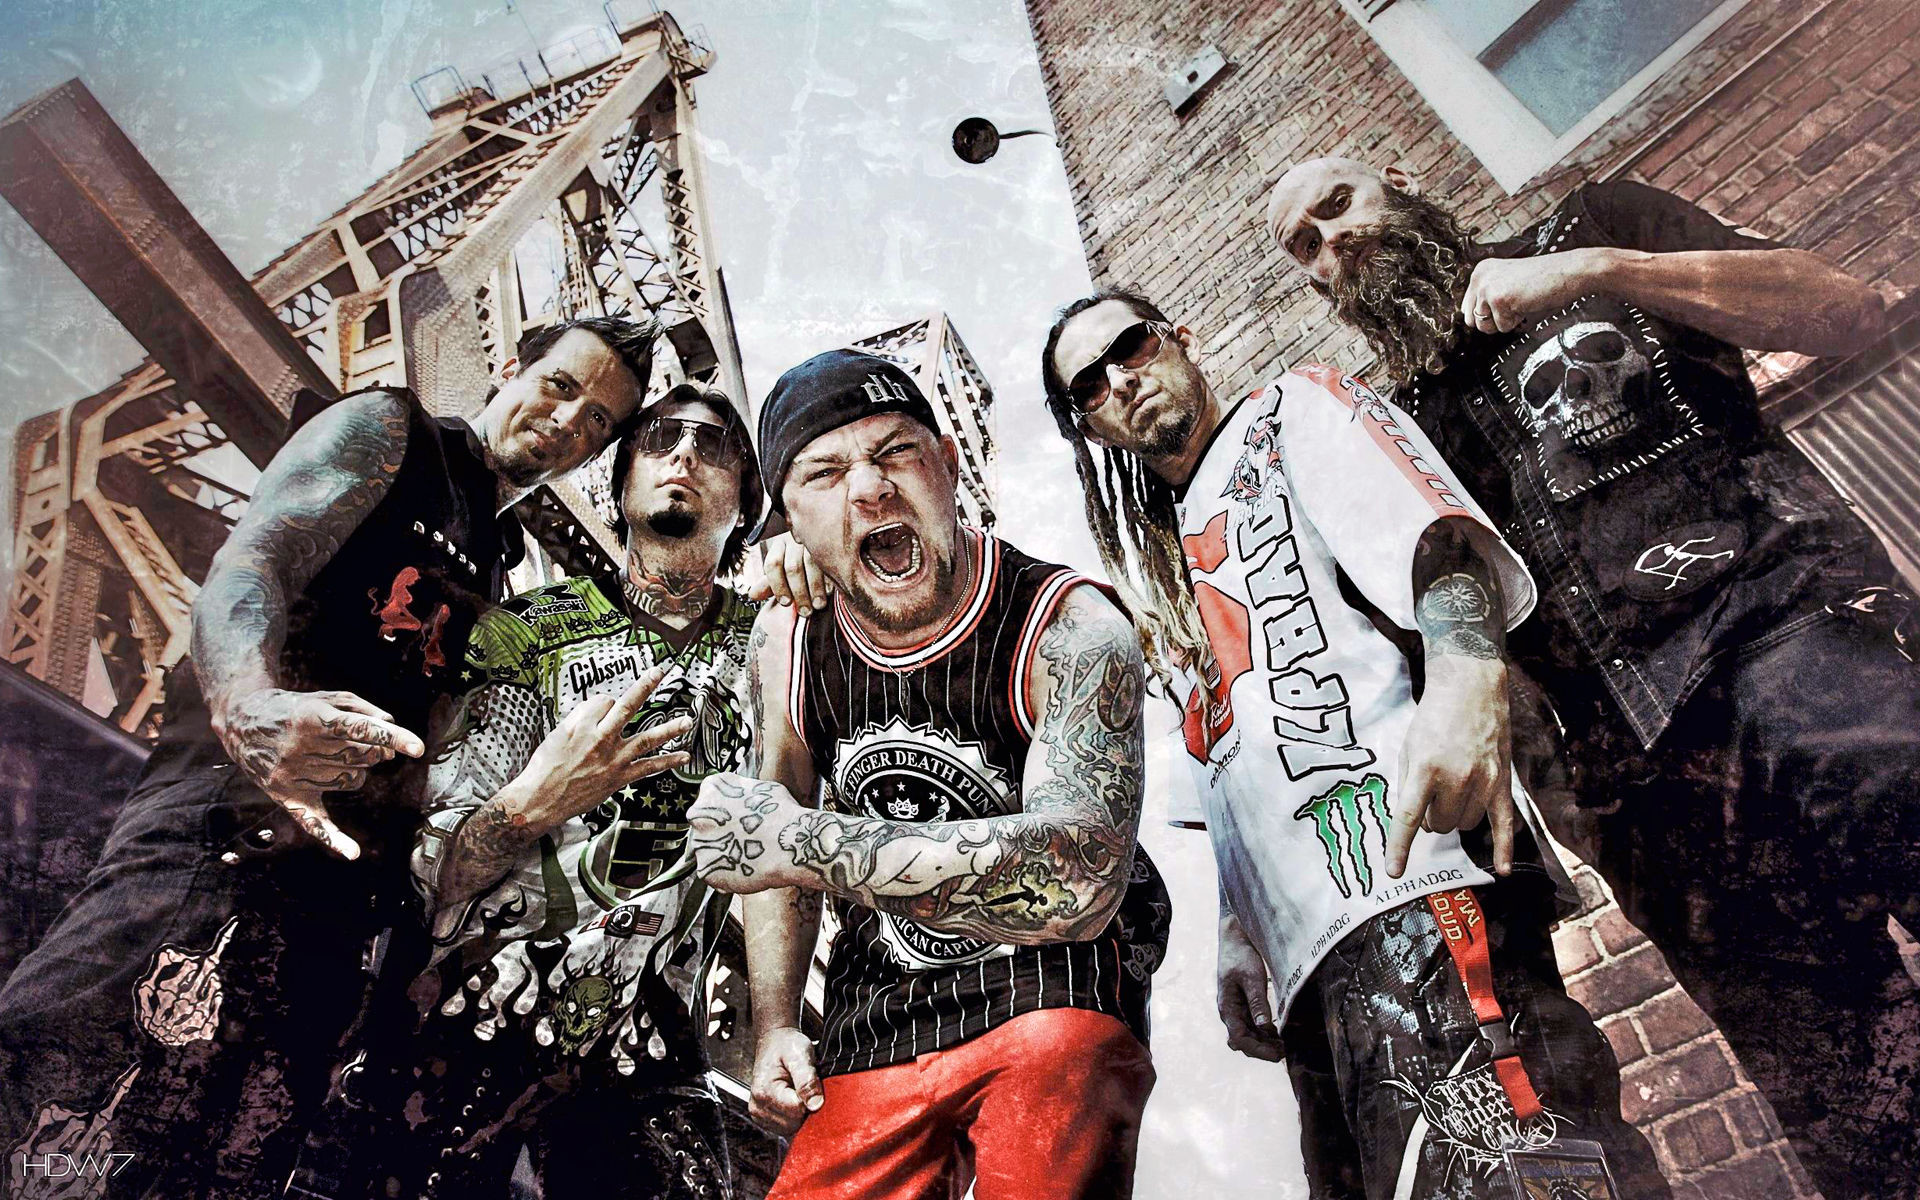 1920x1200 five finger death punch music band group